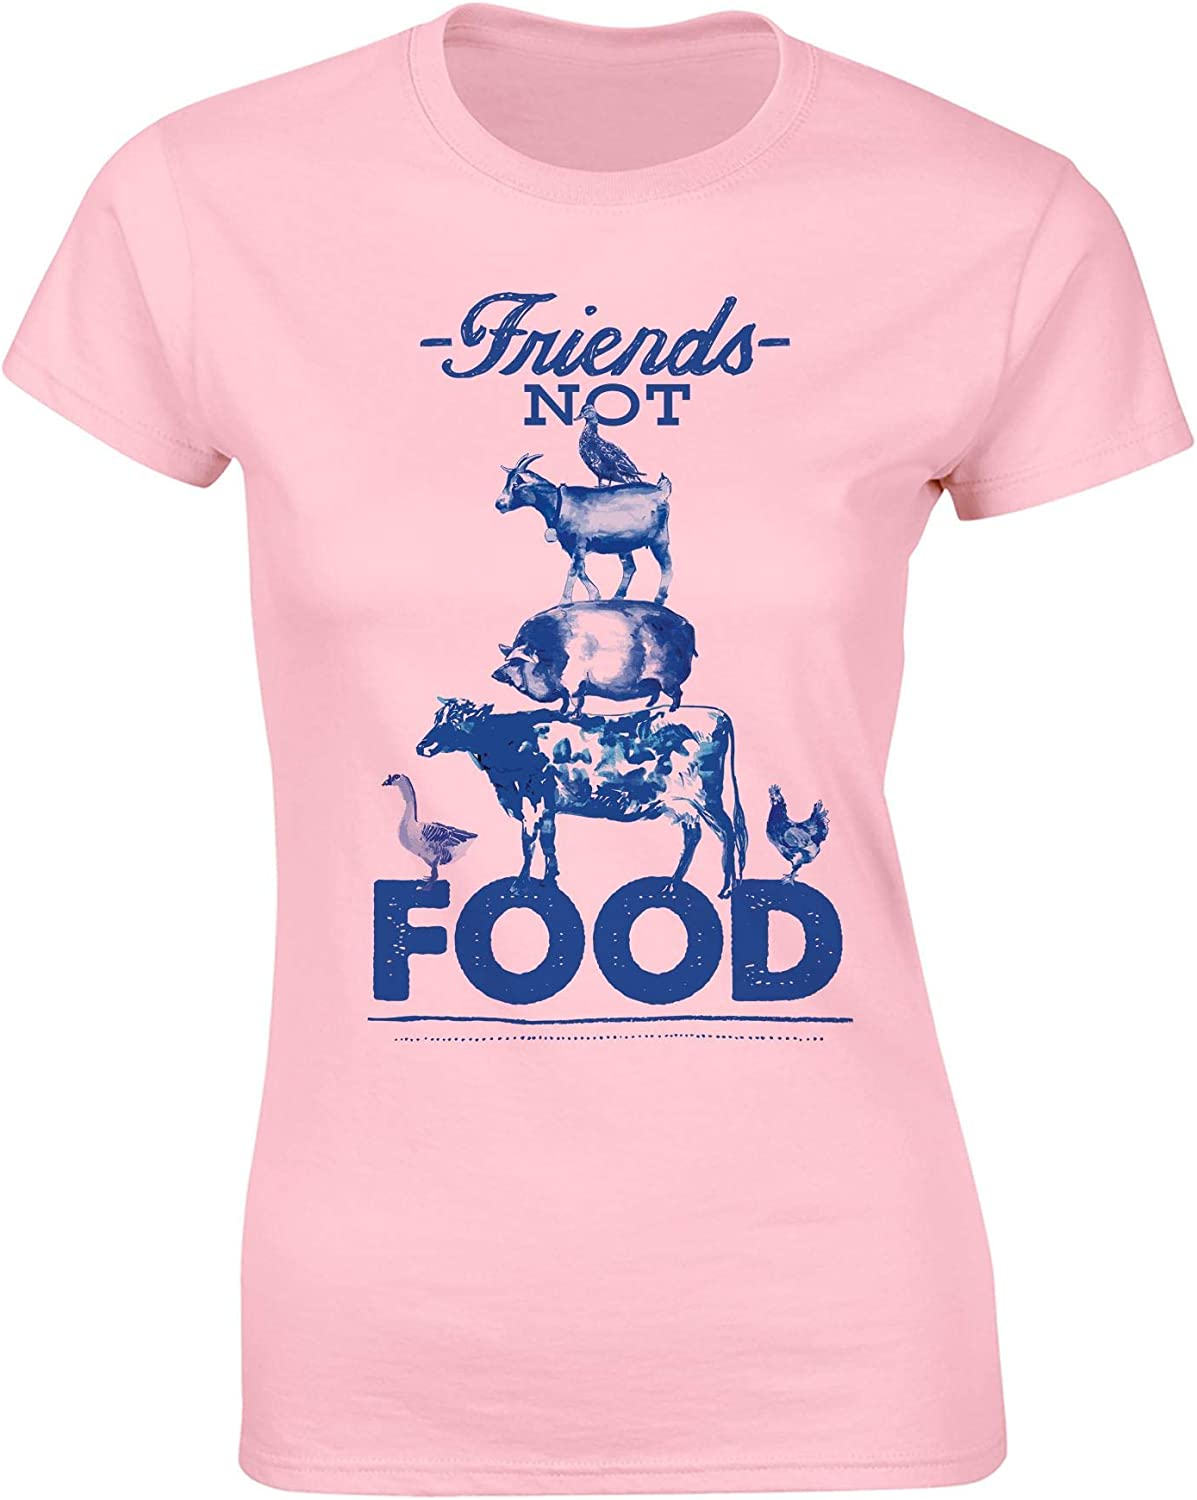 Vegan T Shirt - Friends Not Food Tshirt - Vegan Gifts for Women